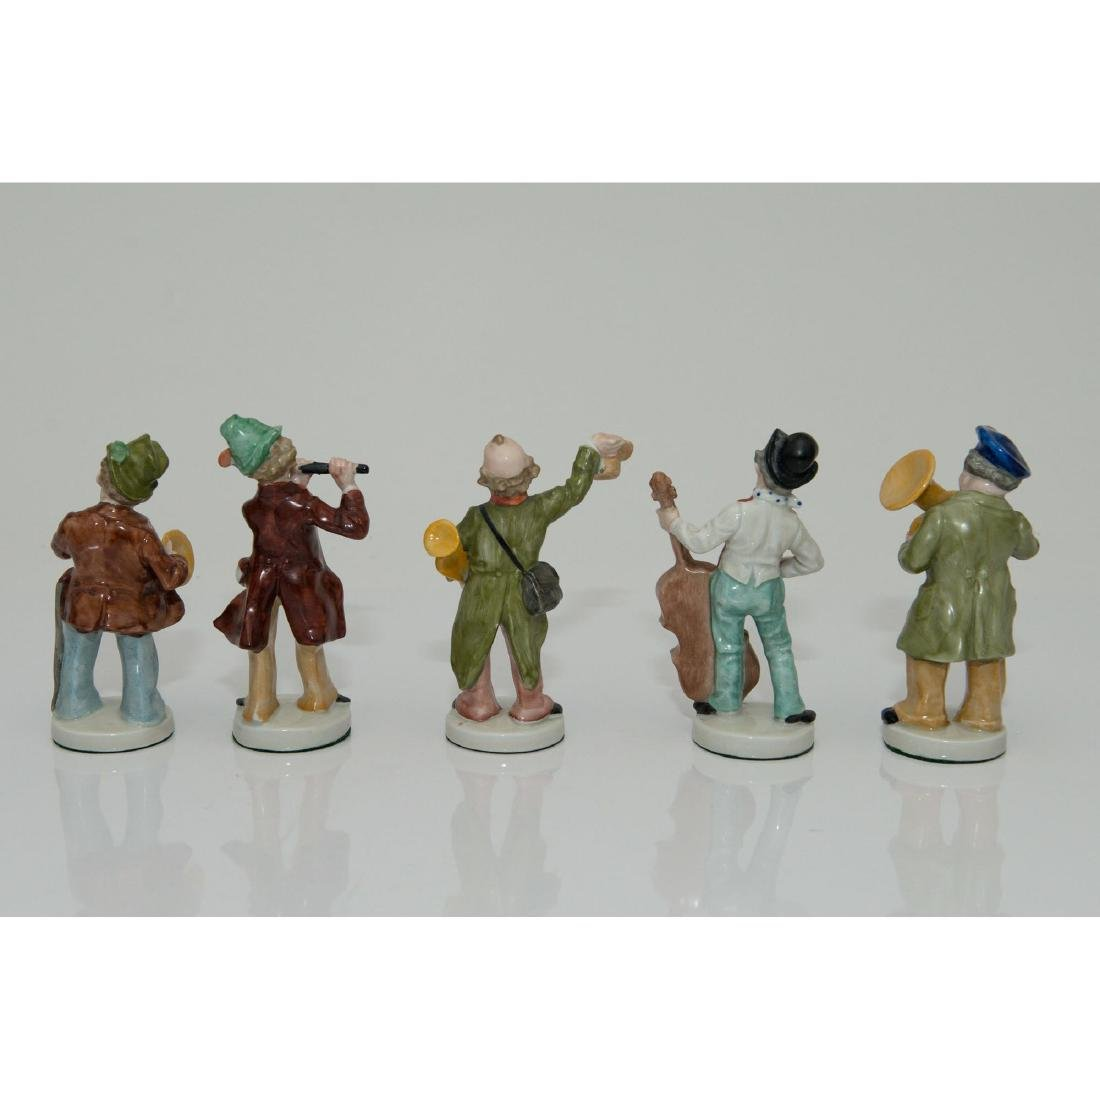 GROUP OF 5 GRAFENTHAL GERMAN ORCHESTRA FIGURINES - 2